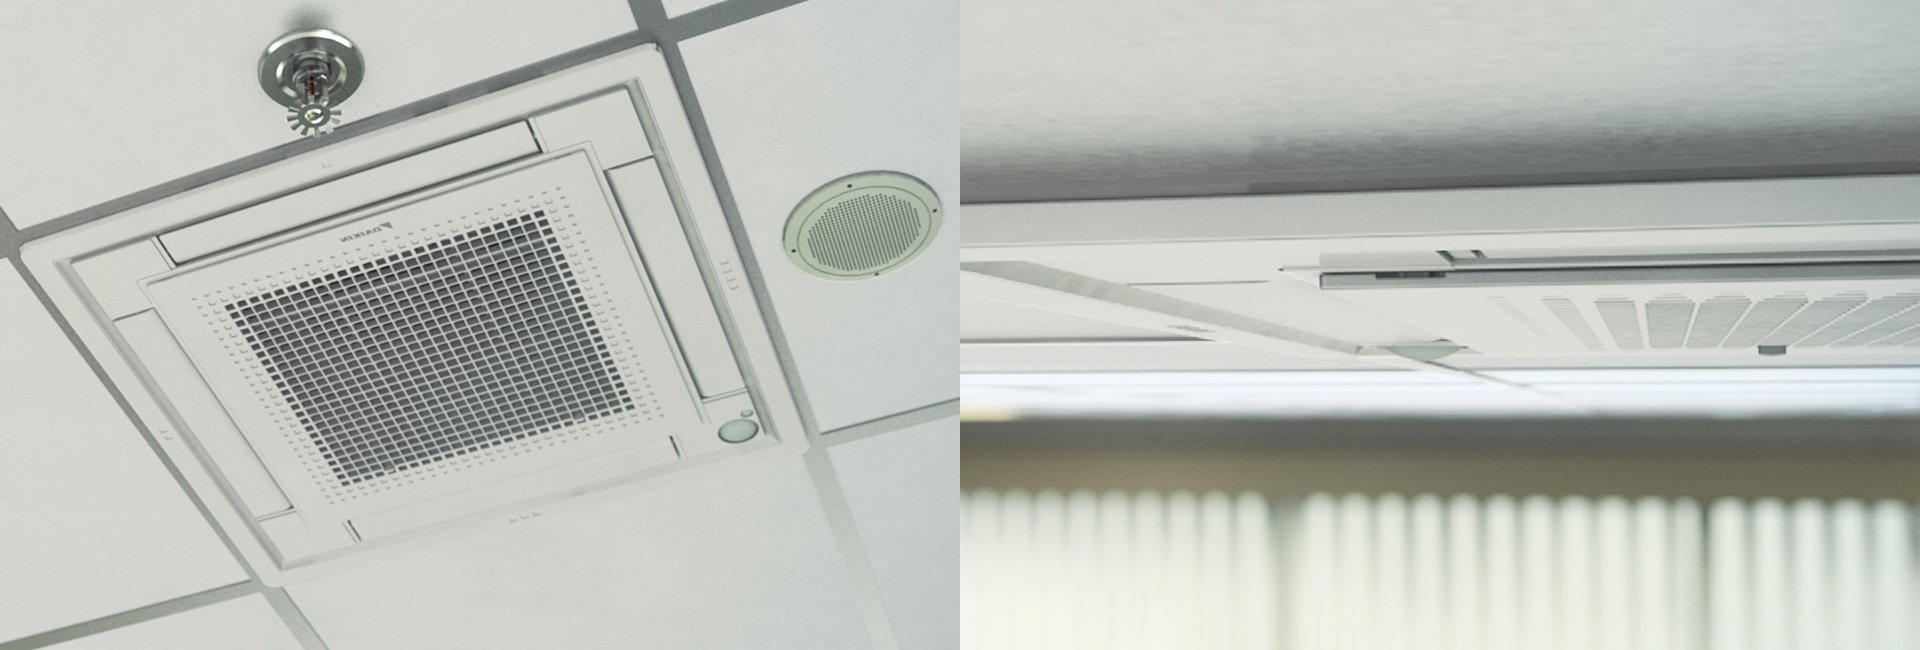 ramsays air conditioning white ducted daikin air contitioner in a ceiling